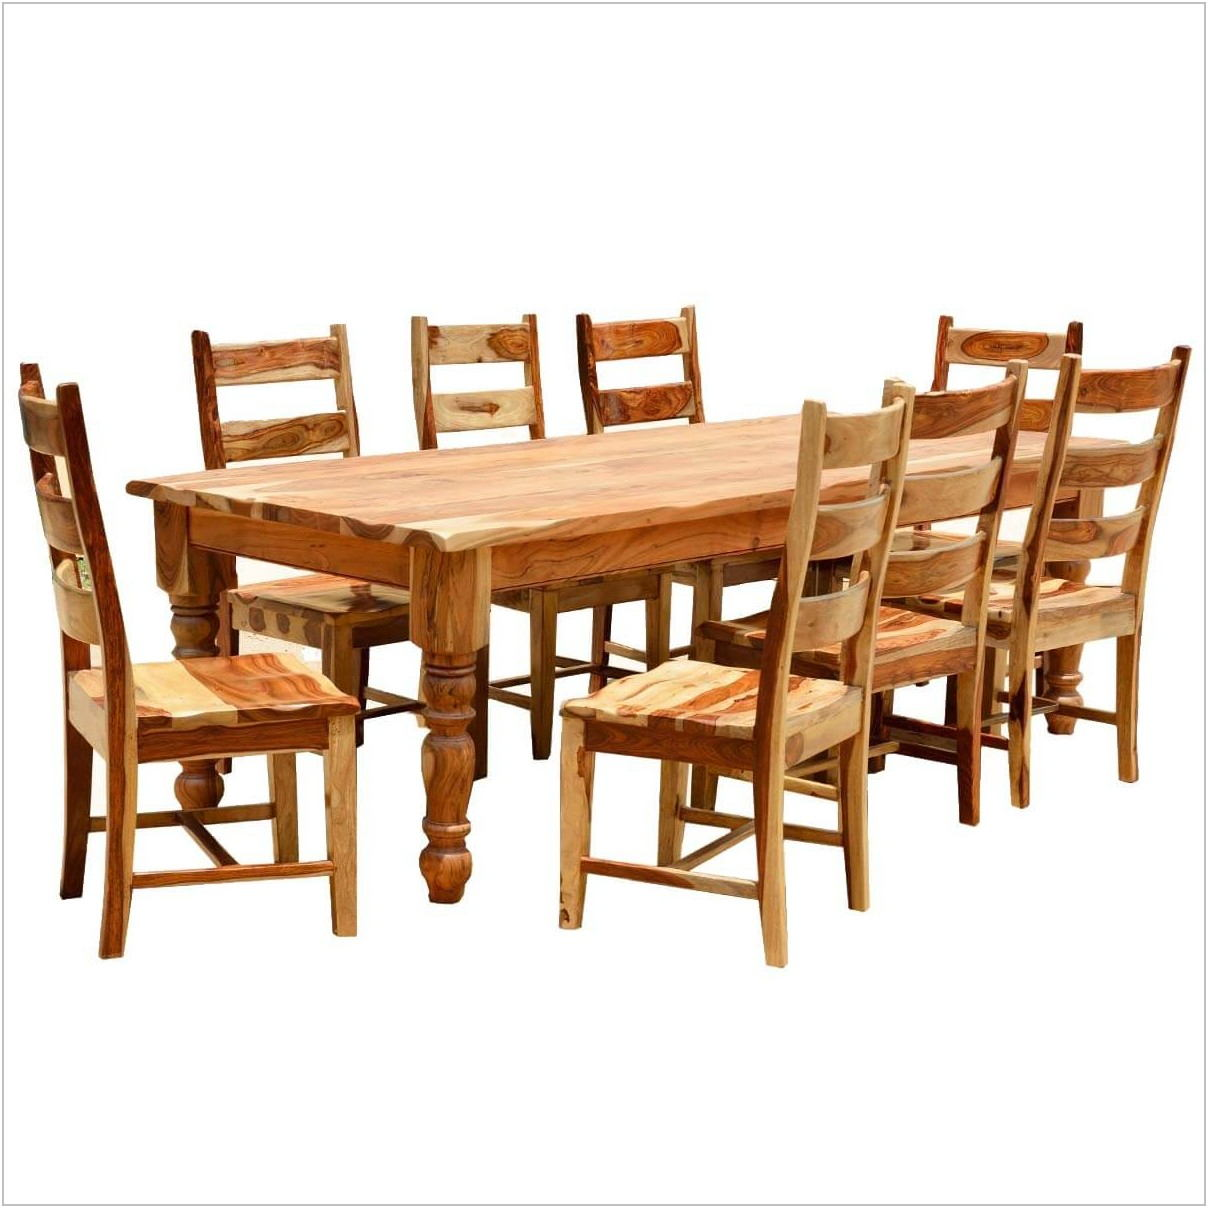 Rustic Solid Wood Dining Room Table